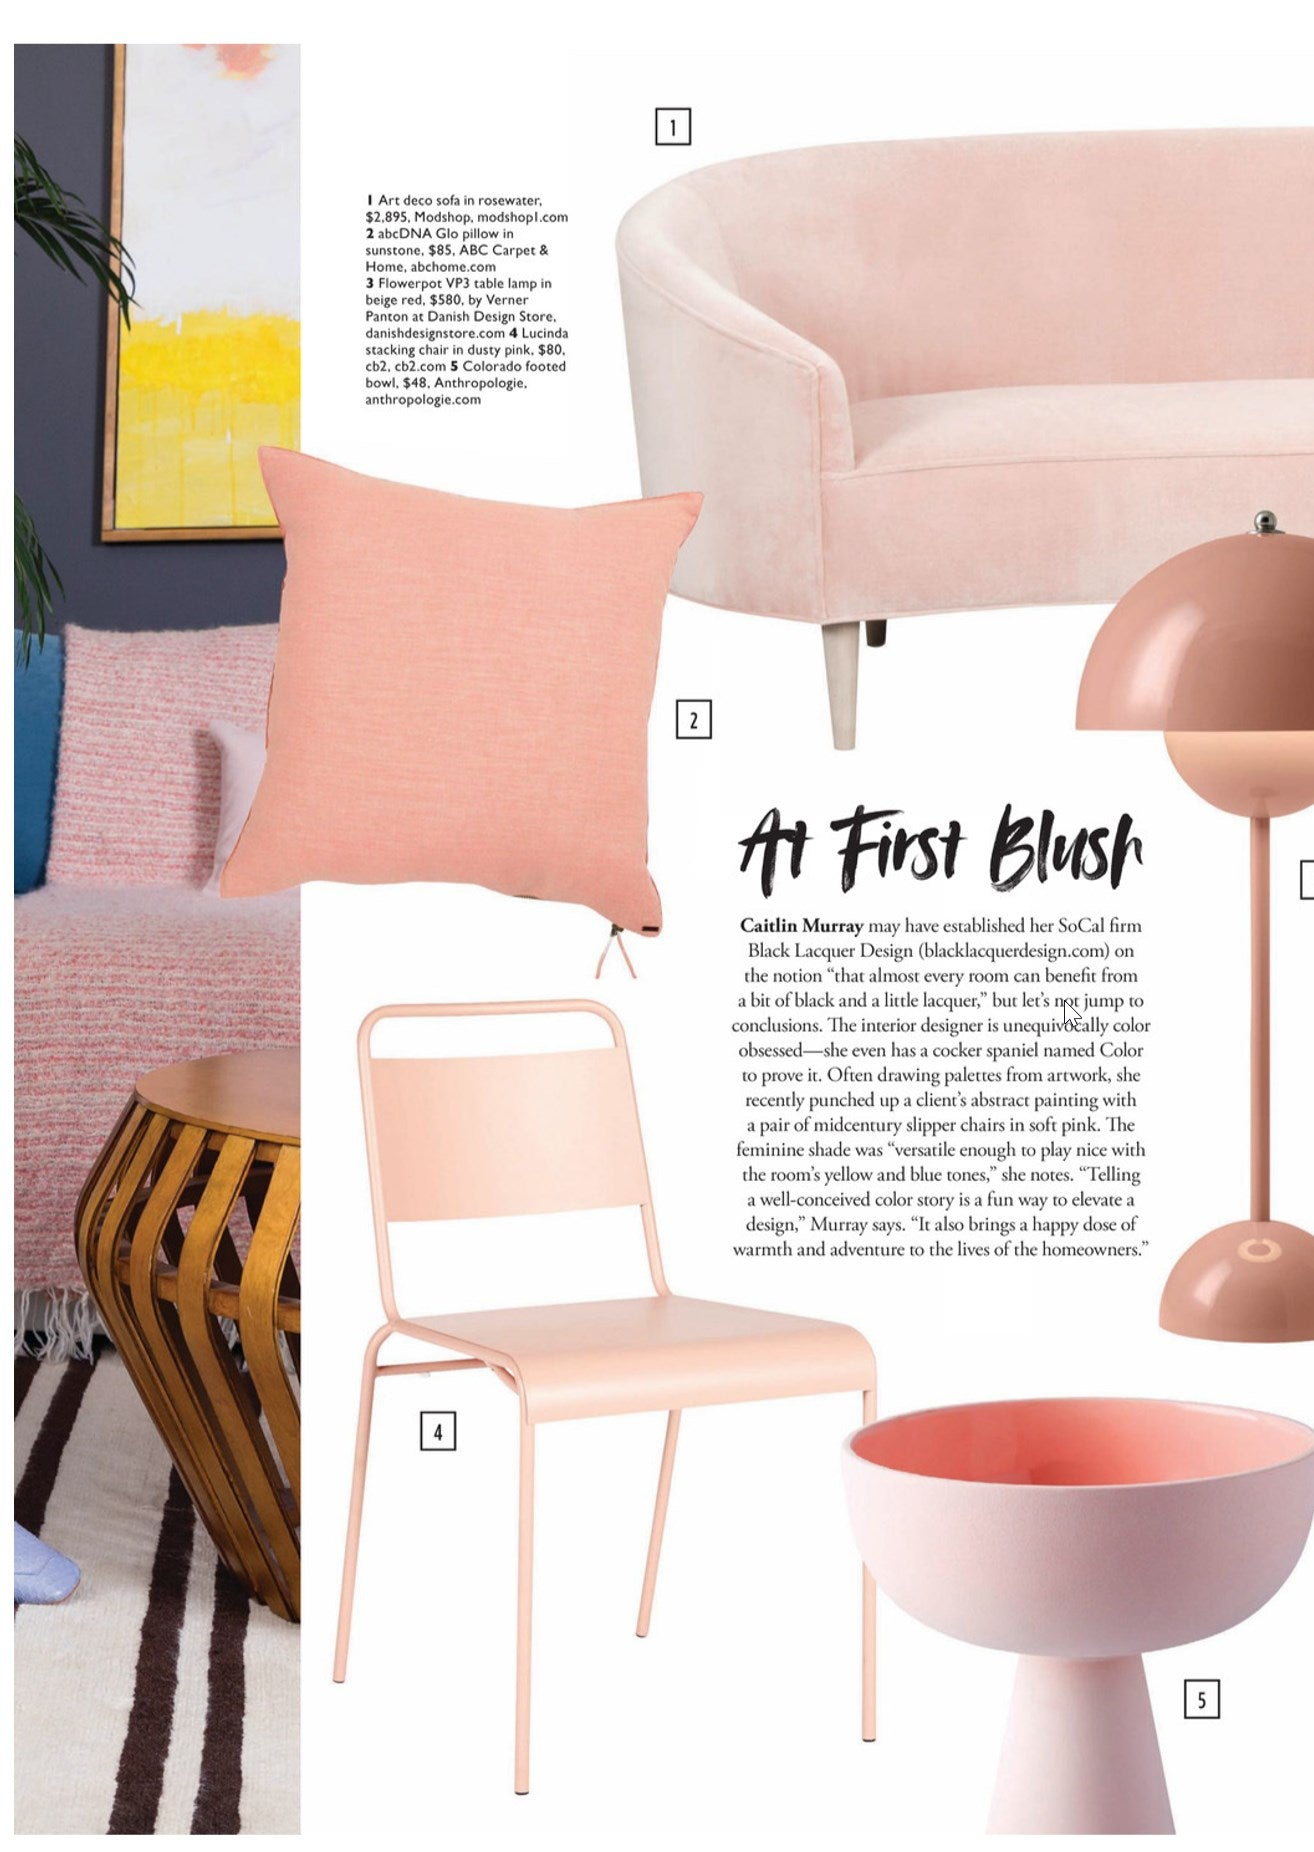 modern luxury interiors magazine featuring modshop's art deco sofa in rosewater velvet